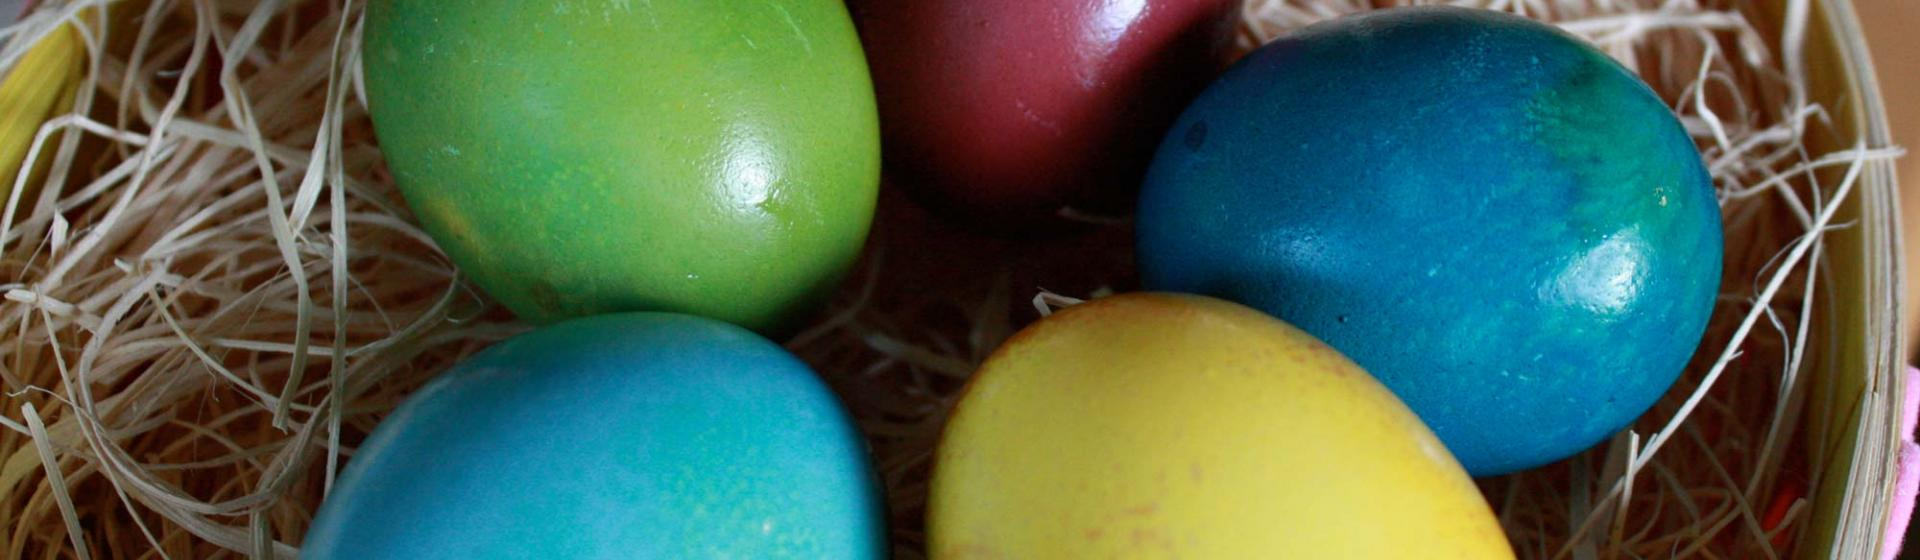 Homemade natural Easter egg dyes